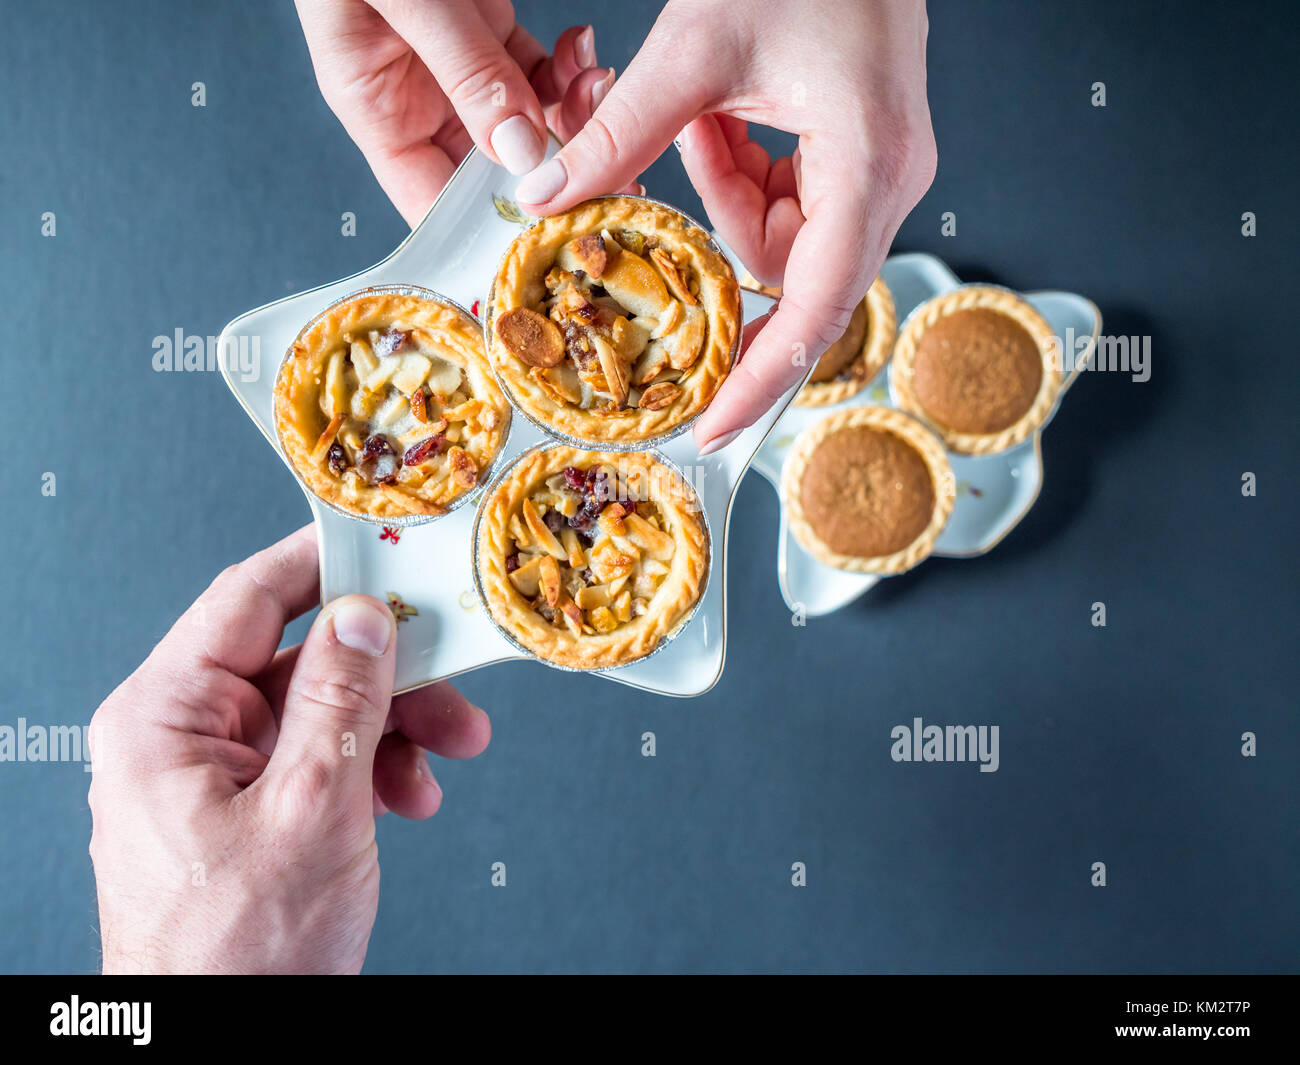 Overhead View Female Hand Grab Christmas Mince Pie Cup Cake From Festive Star Shape Plate on Dark Background. - Stock Image